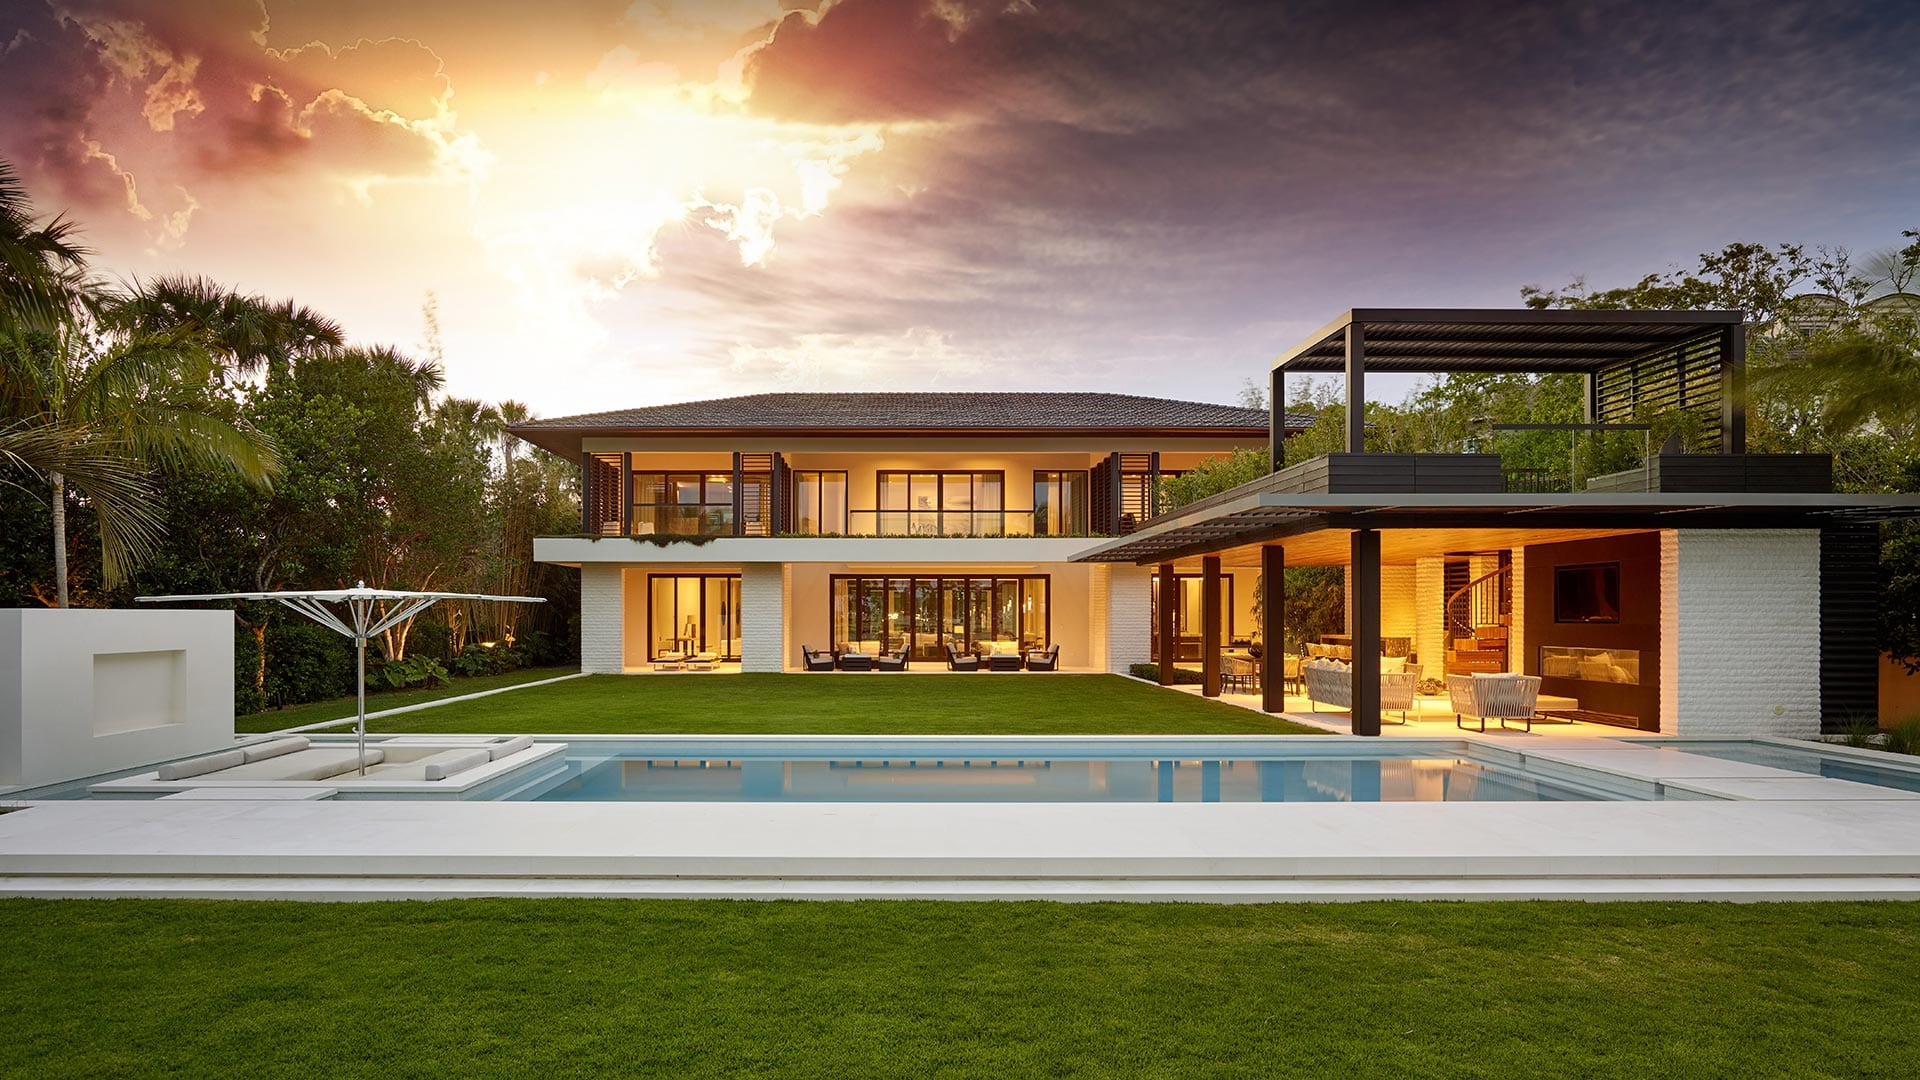 Mortgage Down Payment Calculator >> For DJ Khaled, buying this $25.9M crib was a no brainer | Mortgage Rates, Mortgage News and ...